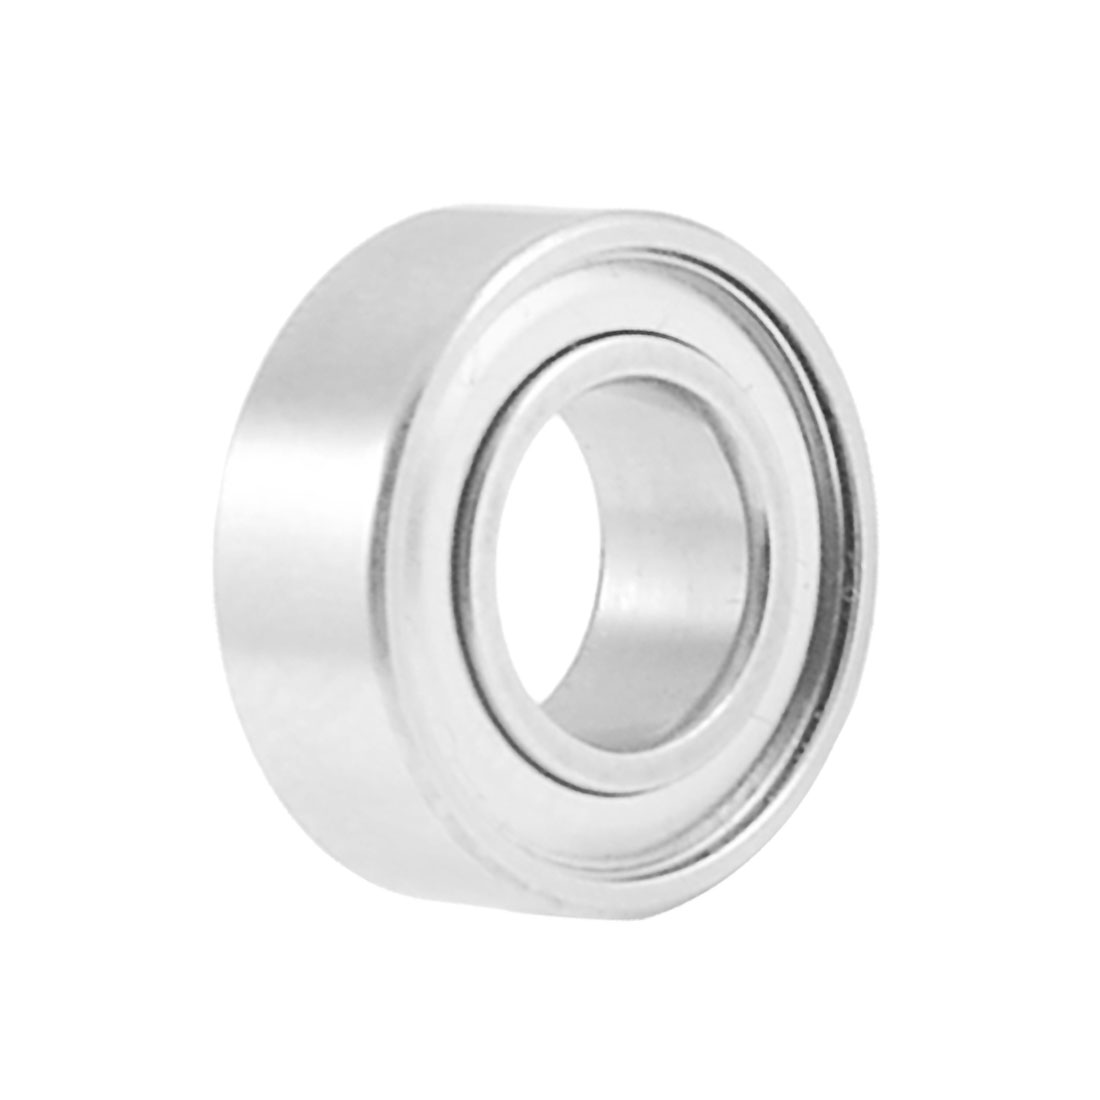 8mm x 4mm x 3mm Metal Double Sealed Ball Bearing Silver Tone